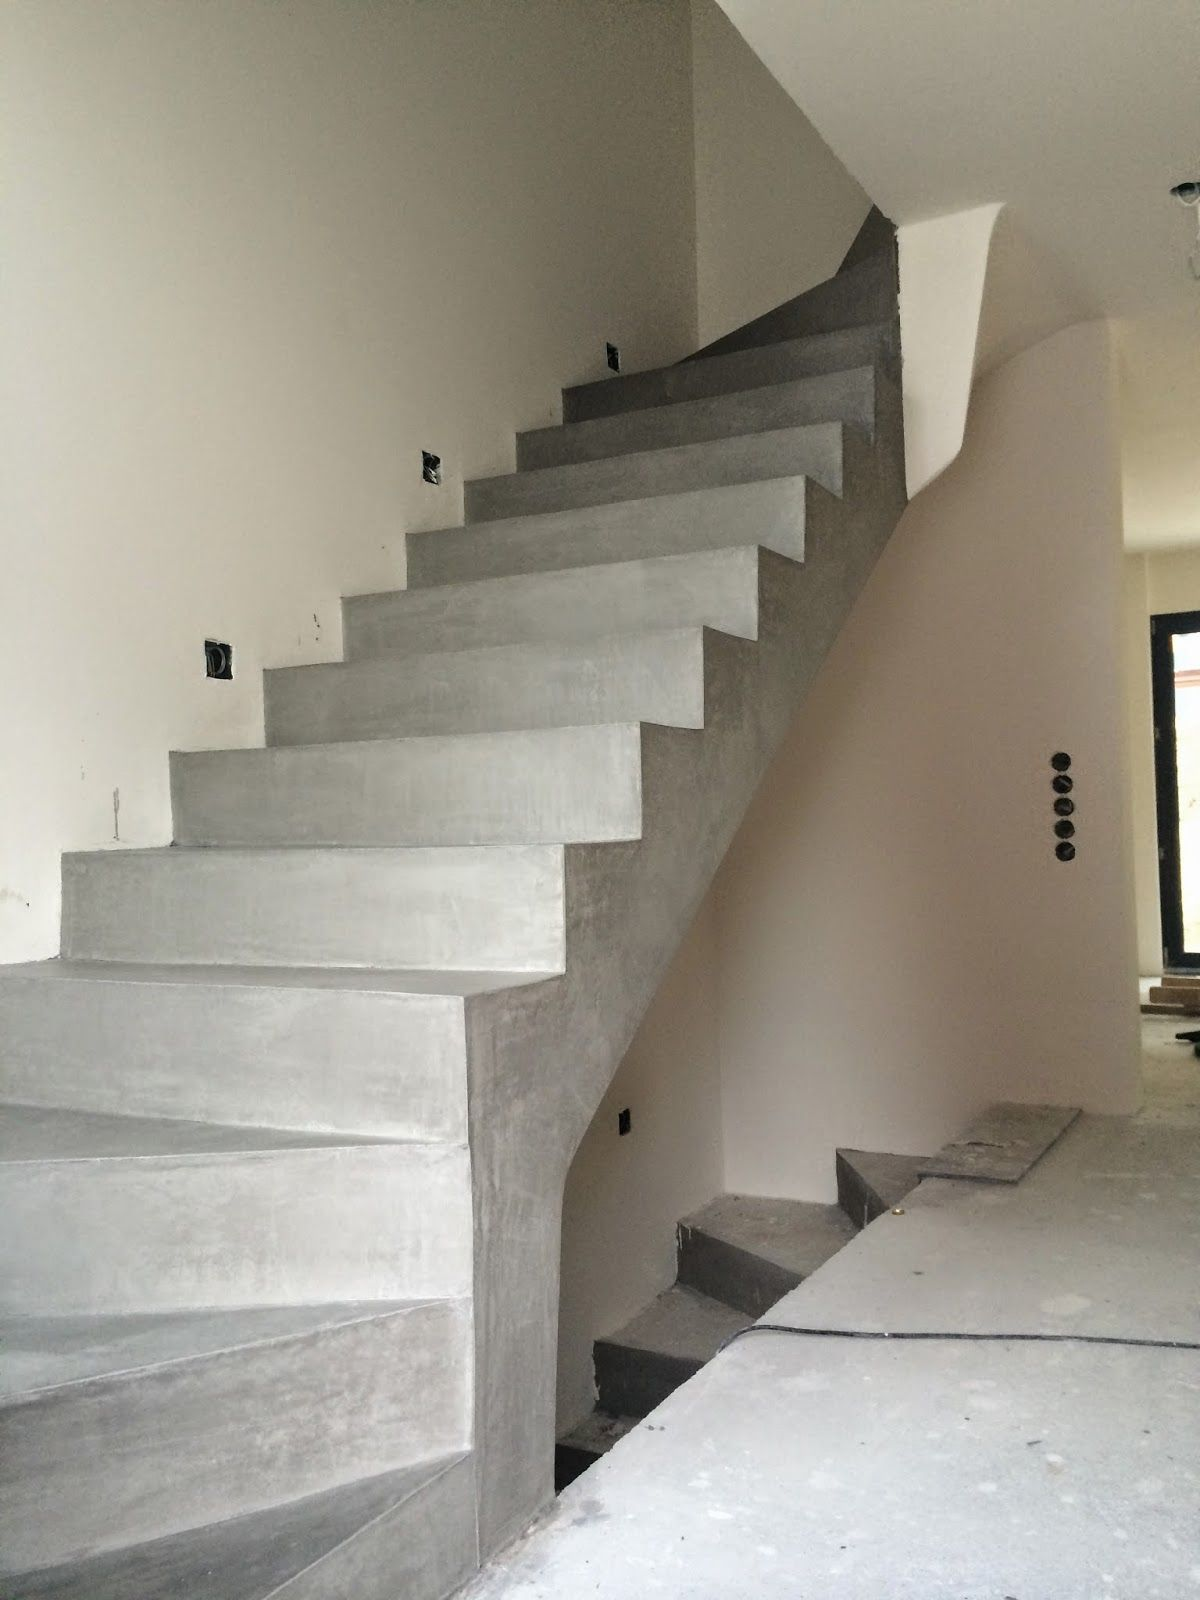 betontreppe beschichten beton cire besser bauen casas y arquitectura stairs house y stairways. Black Bedroom Furniture Sets. Home Design Ideas